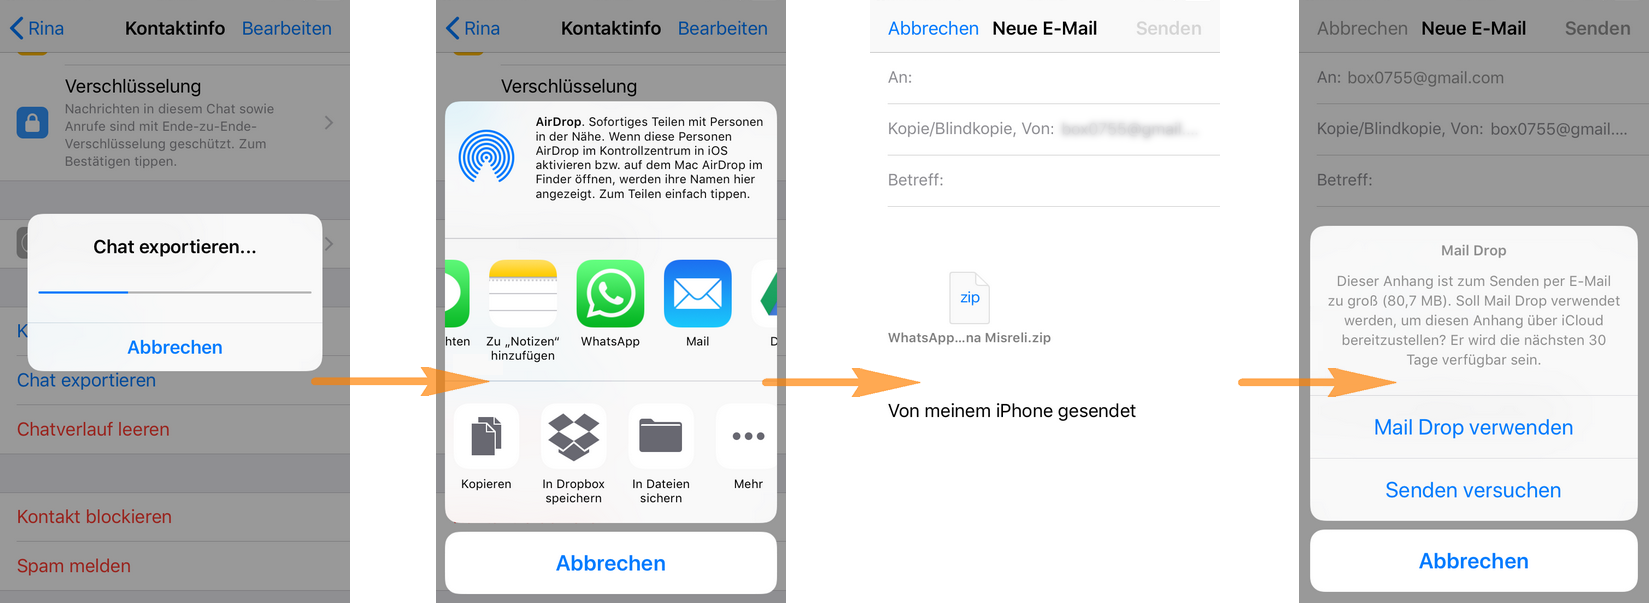 WhatsApp Chat per Email senden